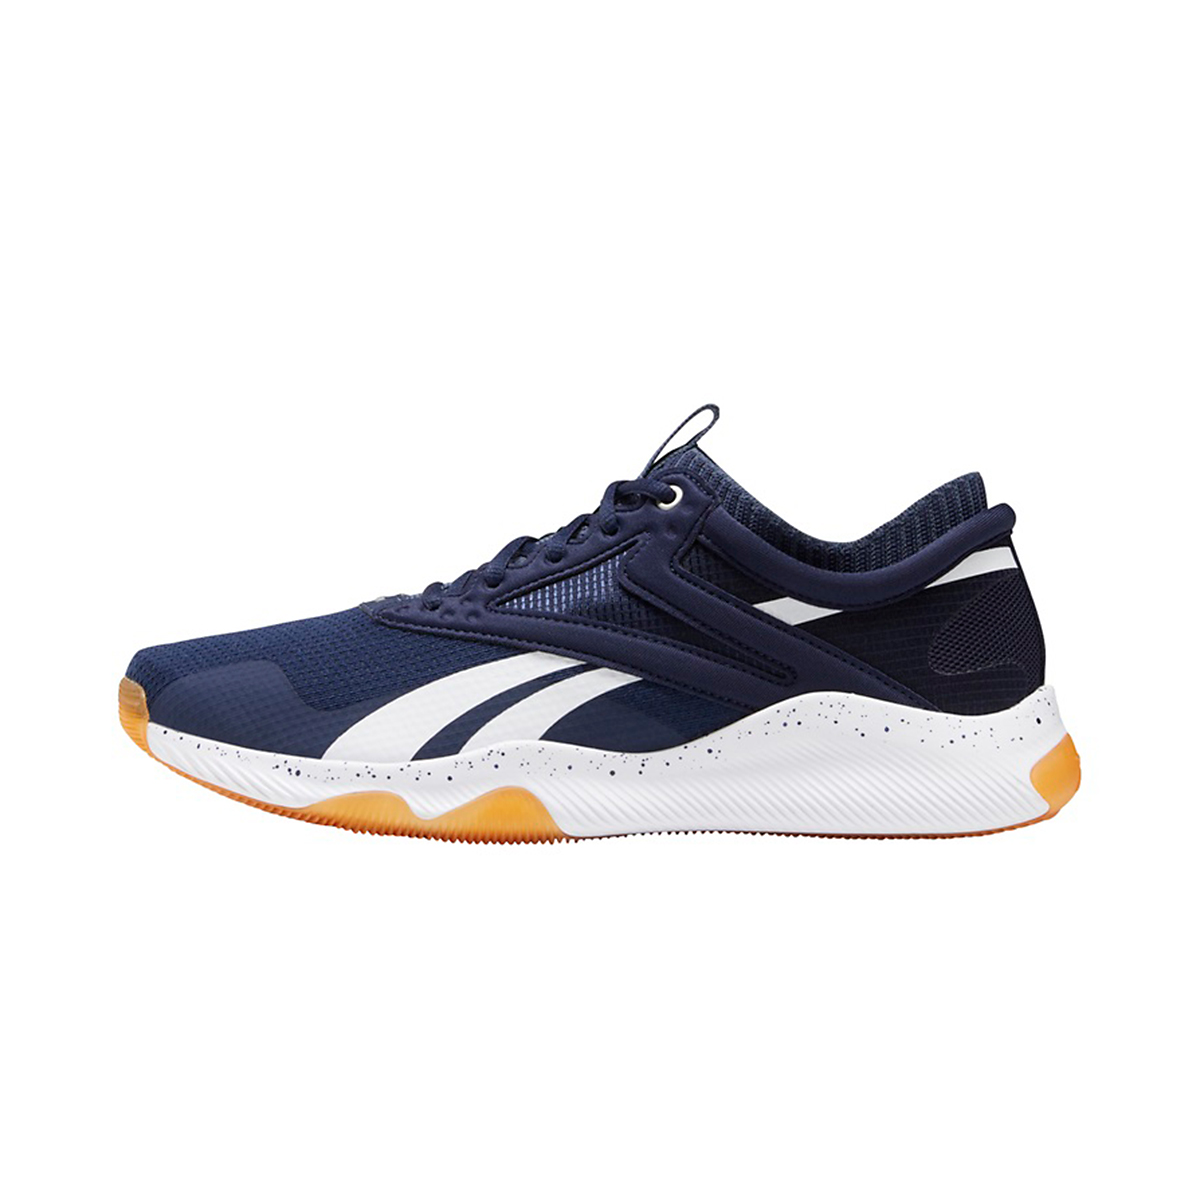 Men's Reebok HIIT Running Shoe - Color: Vector Navy/White - Size: 6 - Width: Regular, Vector Navy/White, large, image 2